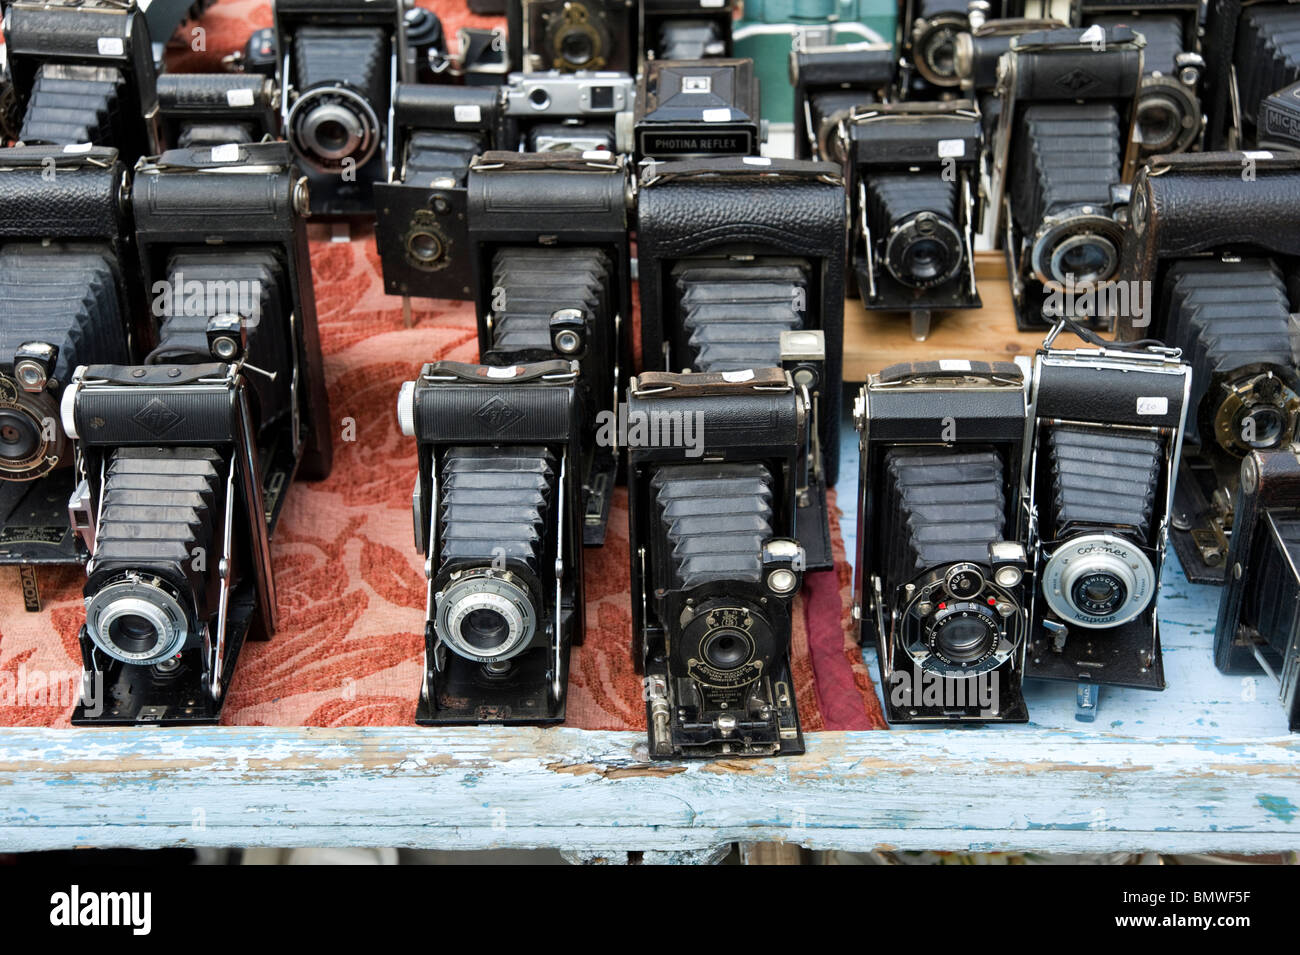 Vintage cameras on stall in Portobello Road market, London, England, Britain, UK - Stock Image